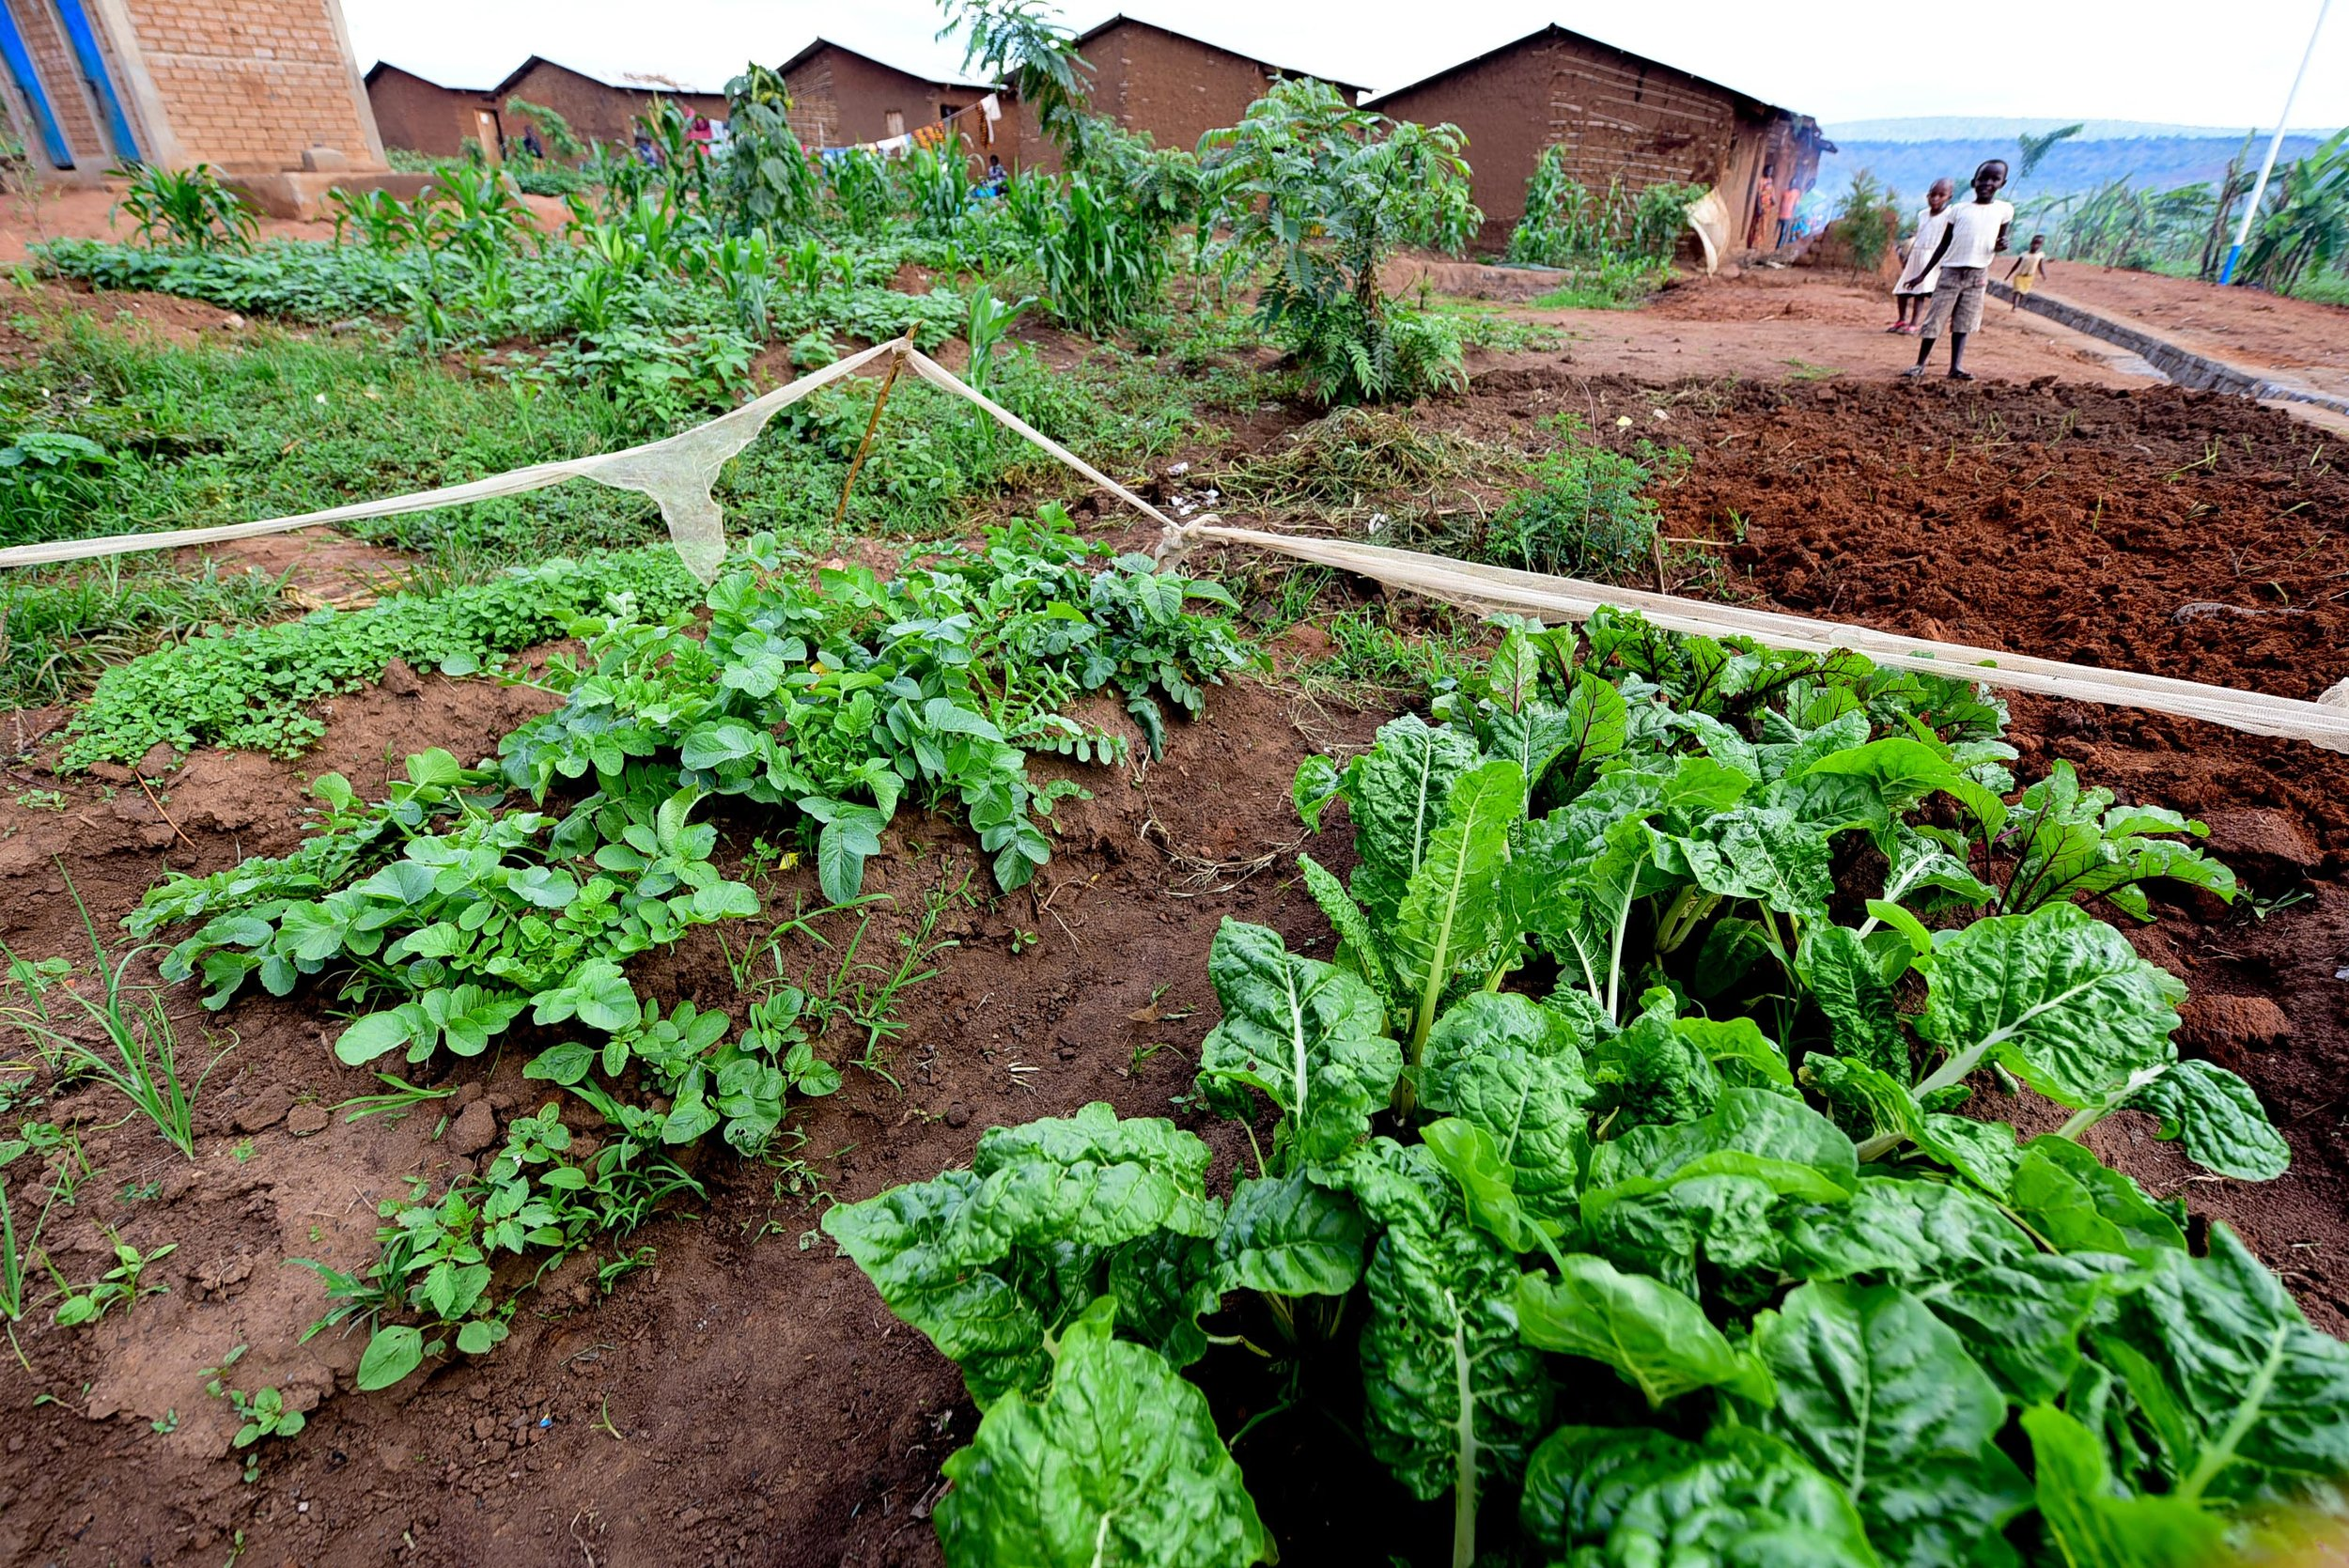 Radishes and Swiss Chard grow in the home garden of a GHI graduate in Mahama refugee camp.